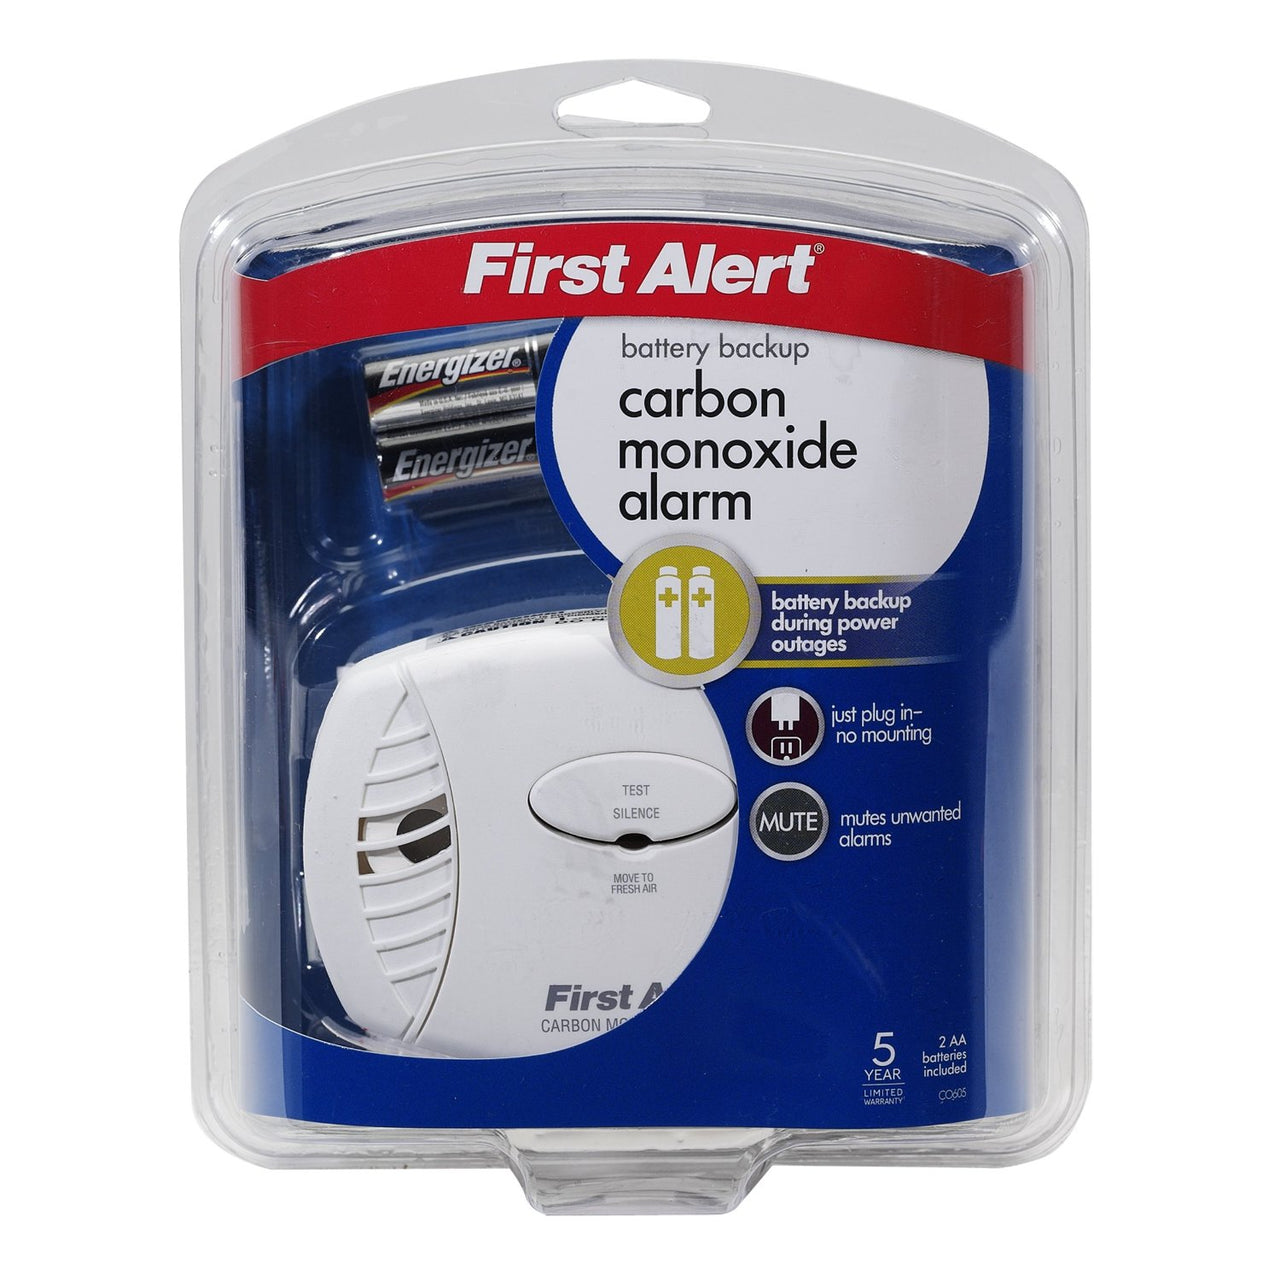 First Alert CO605 Carbon Monoxide Plug In Alarm, 85 db